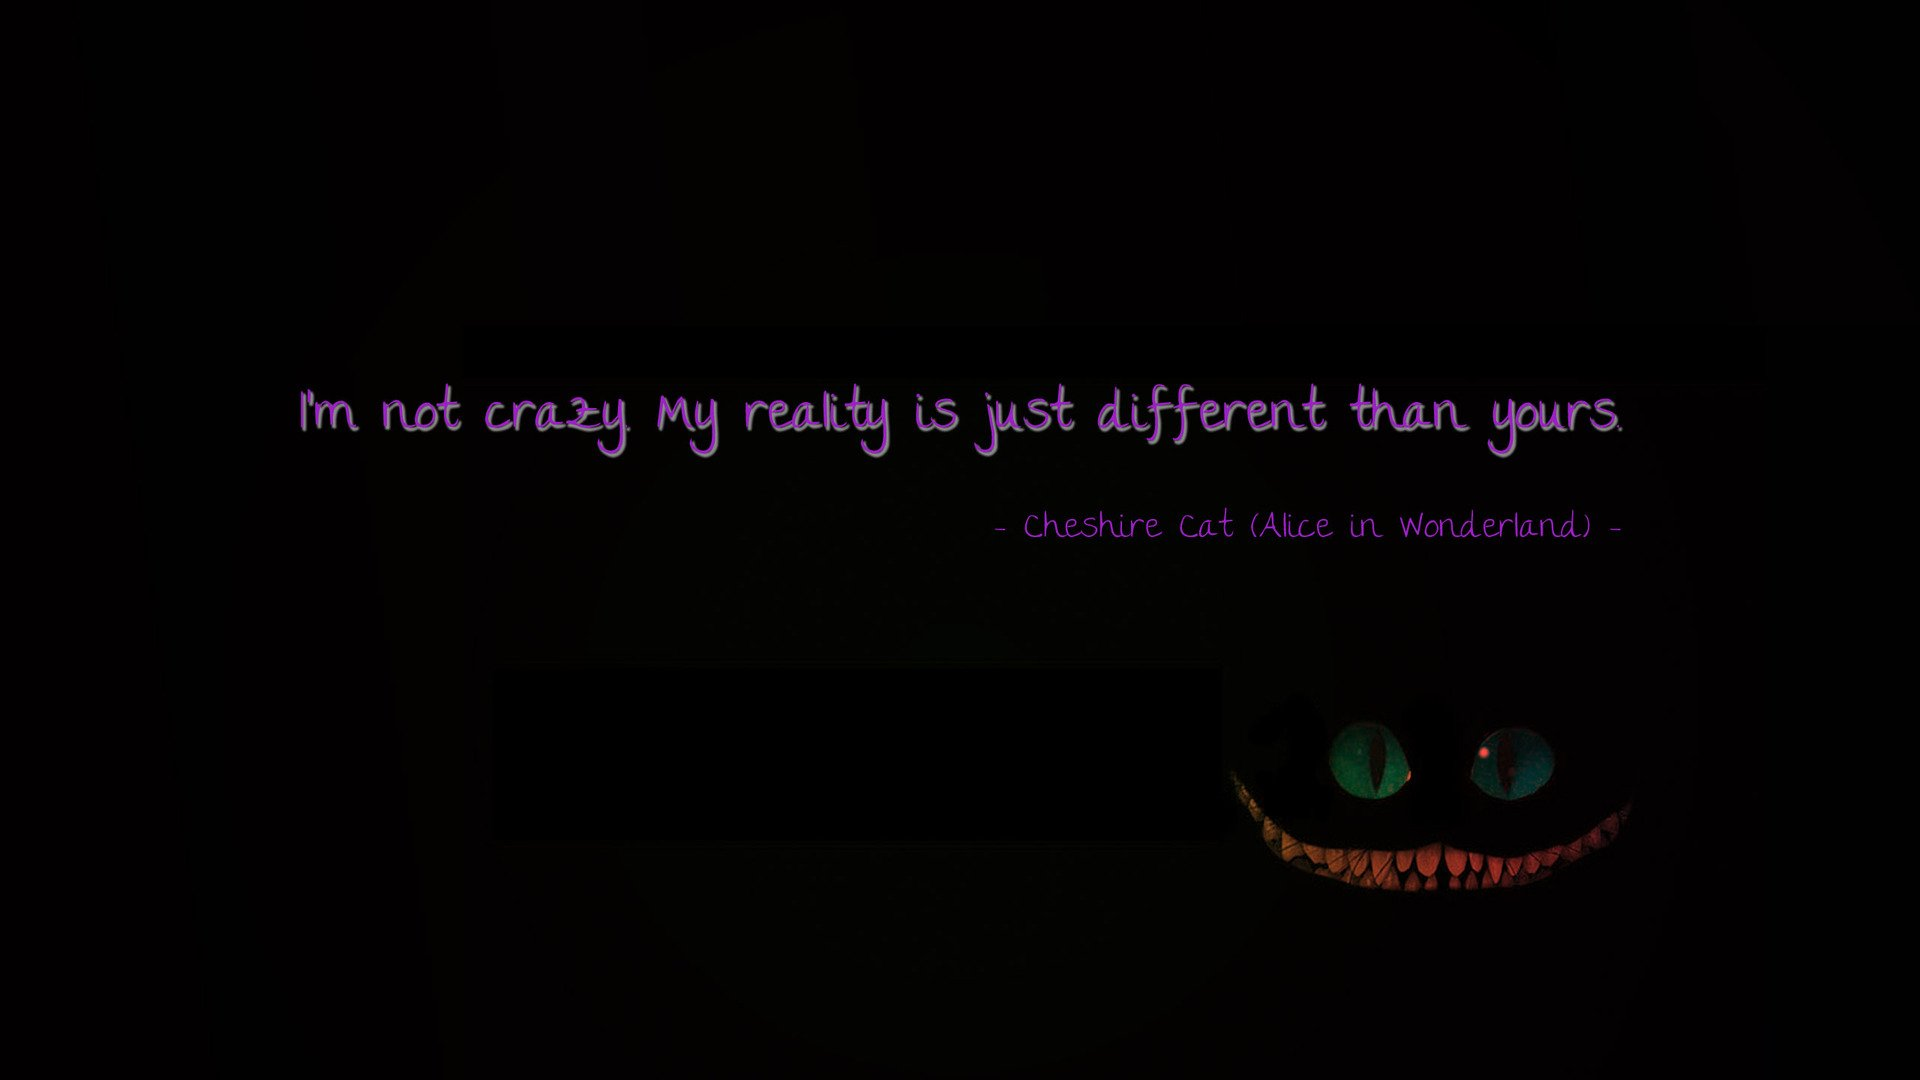 Quote From Alice In Wonderland Hd Wallpaper Background Image